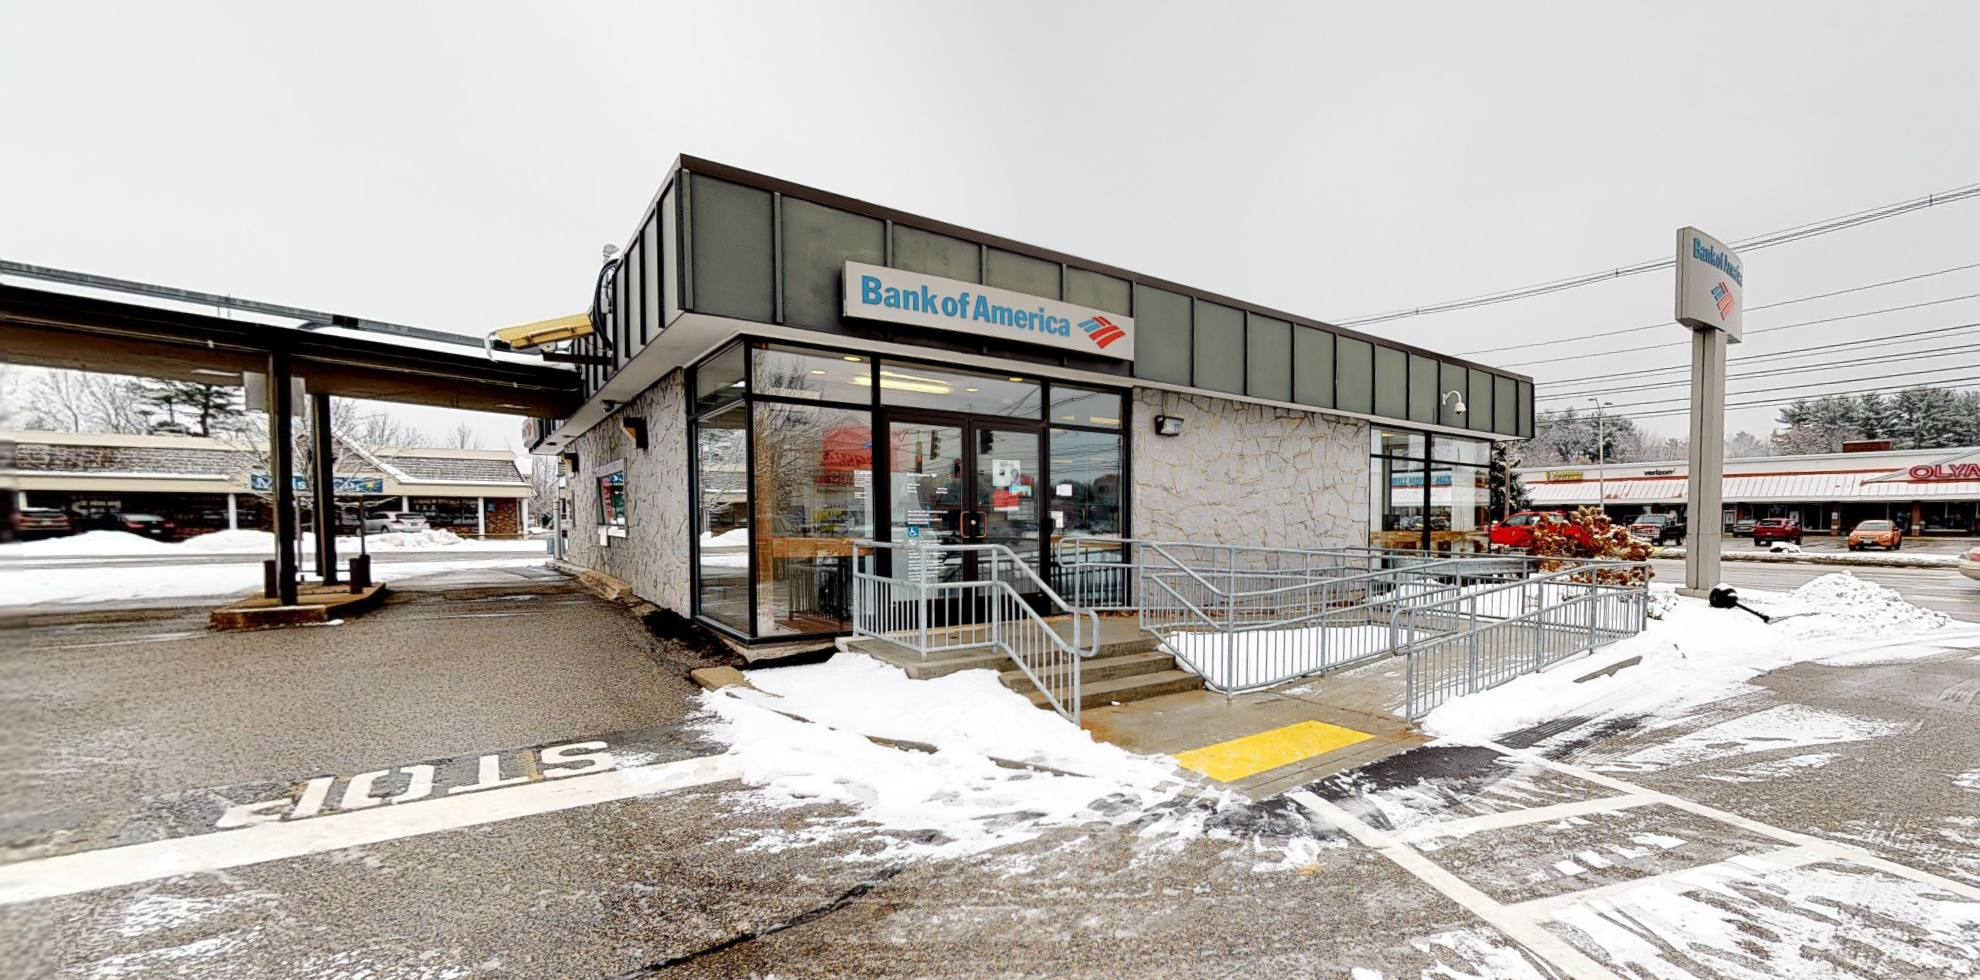 Bank of America financial center with drive-thru ATM   772 Roosevelt Trl, Windham, ME 04062